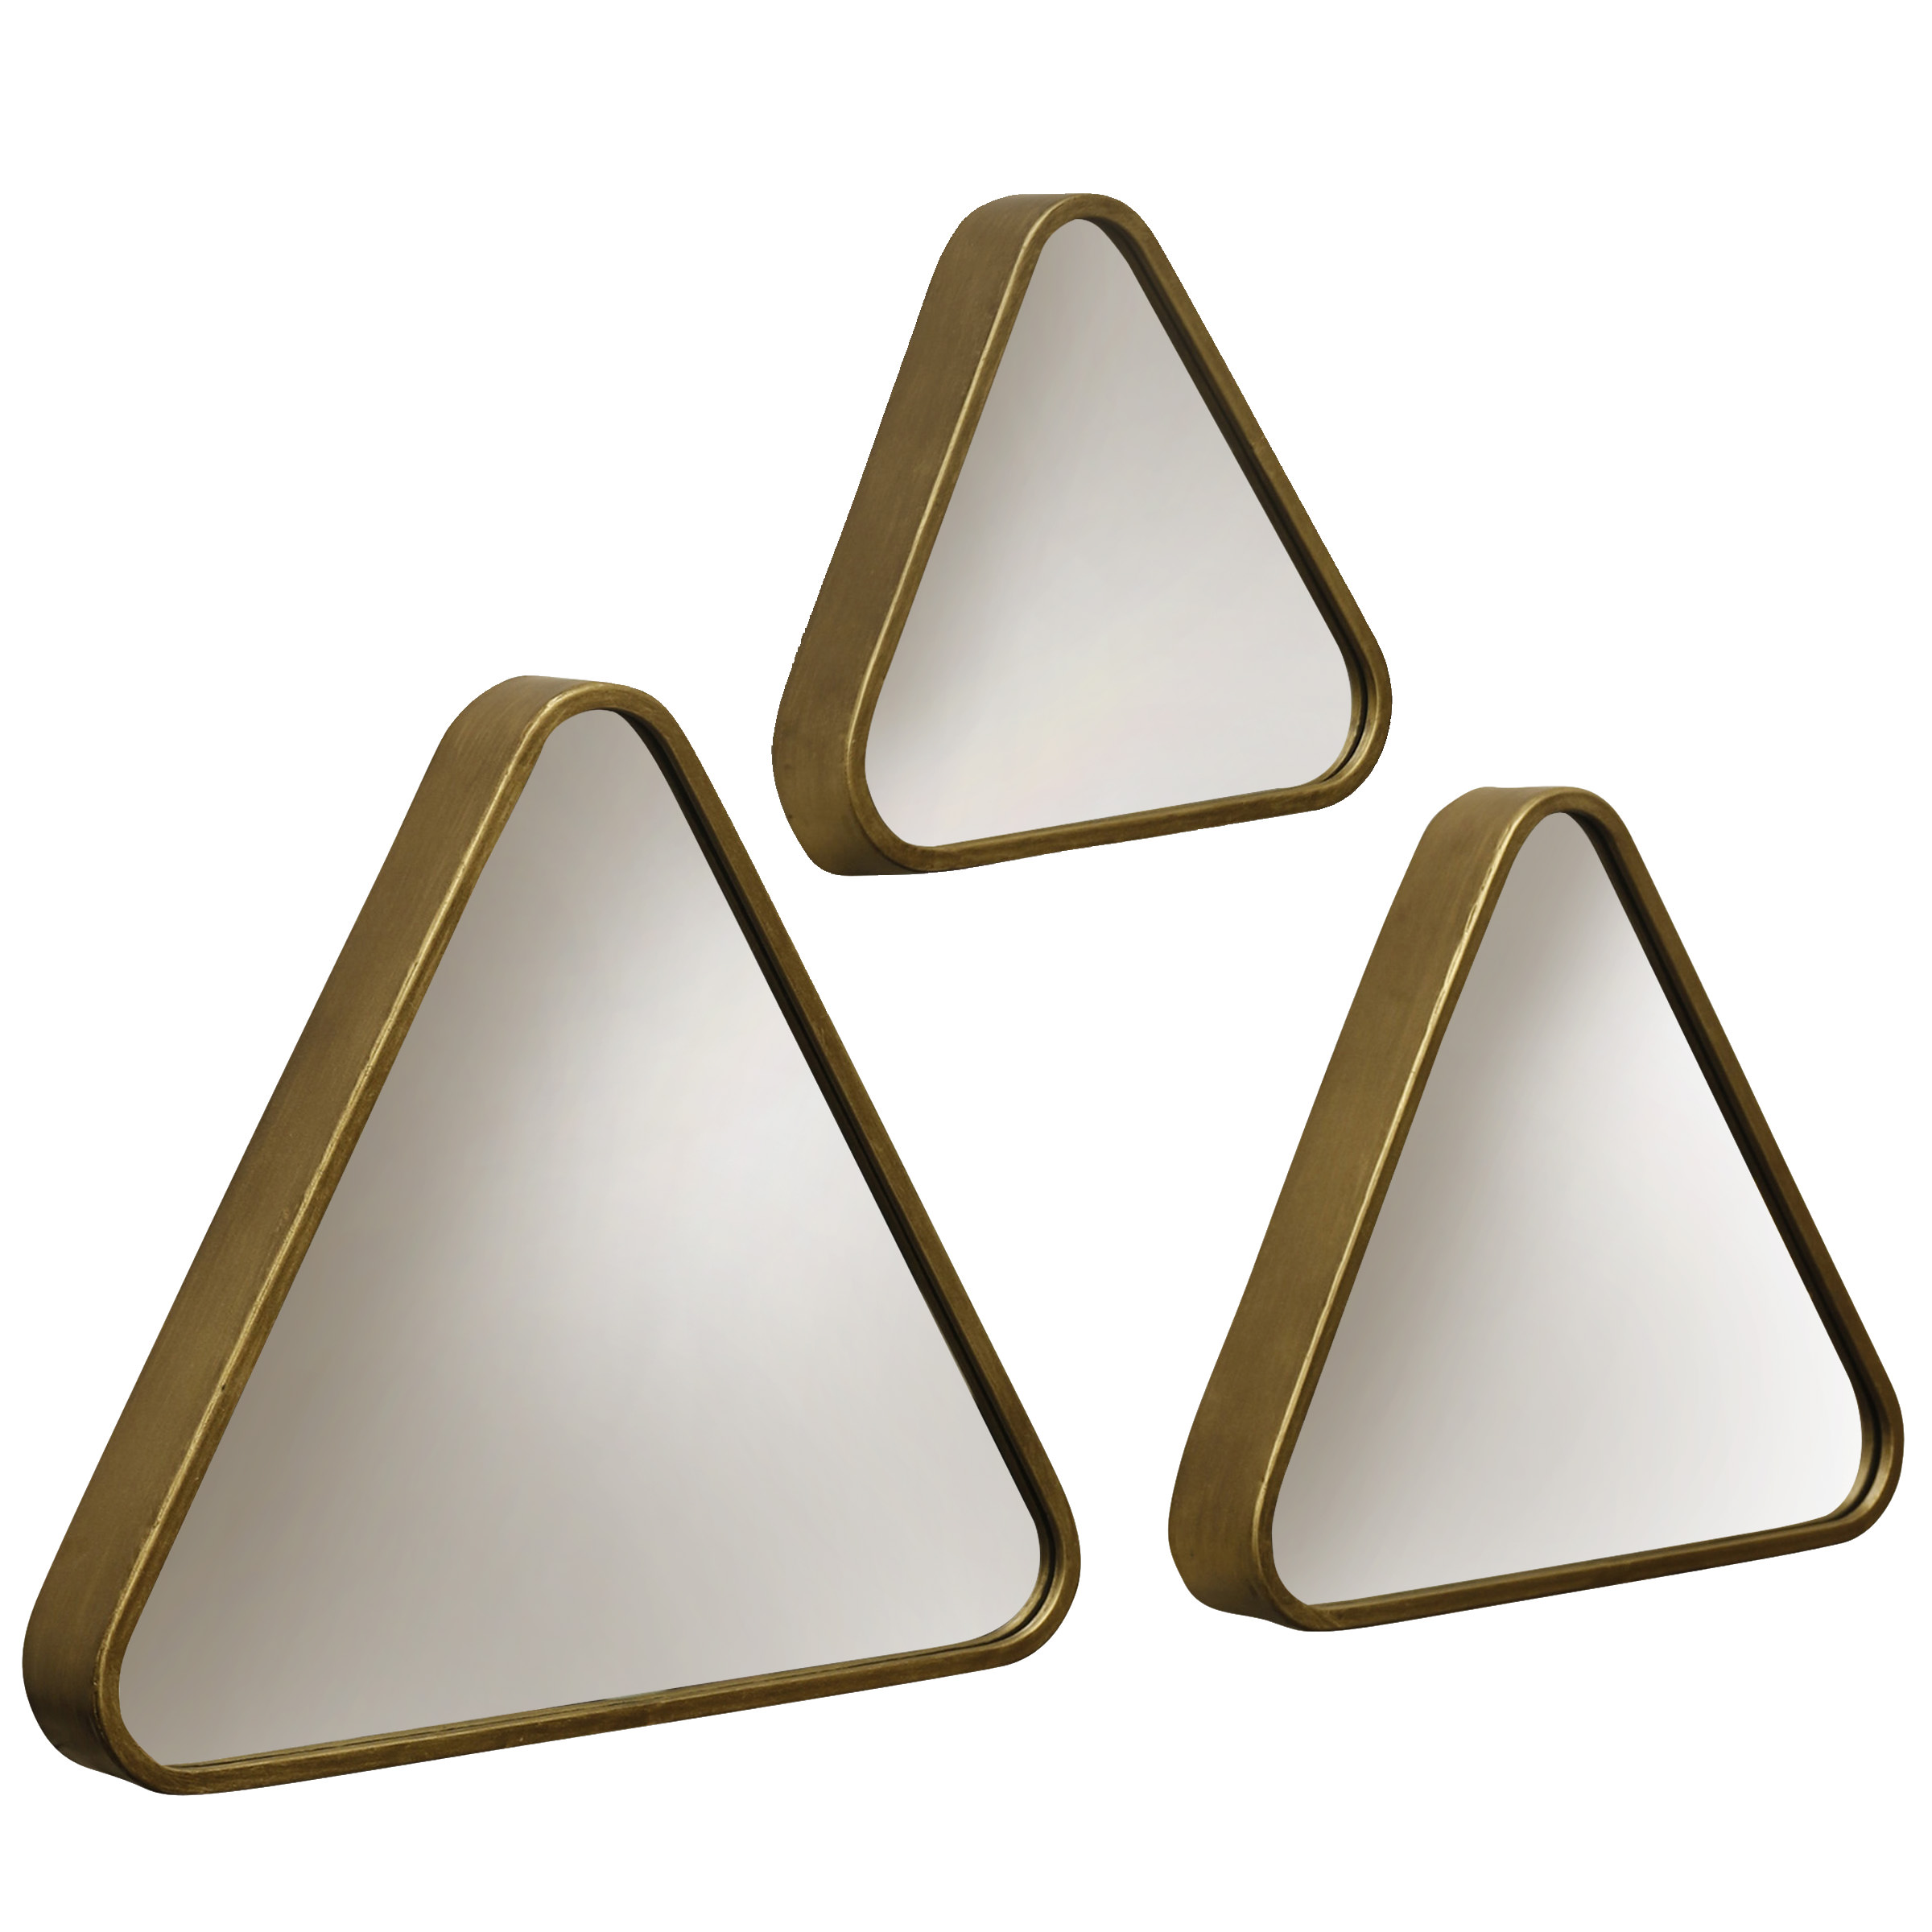 Triangular Framed Wall Mirrors Gold Set Of 3 Walmart Com